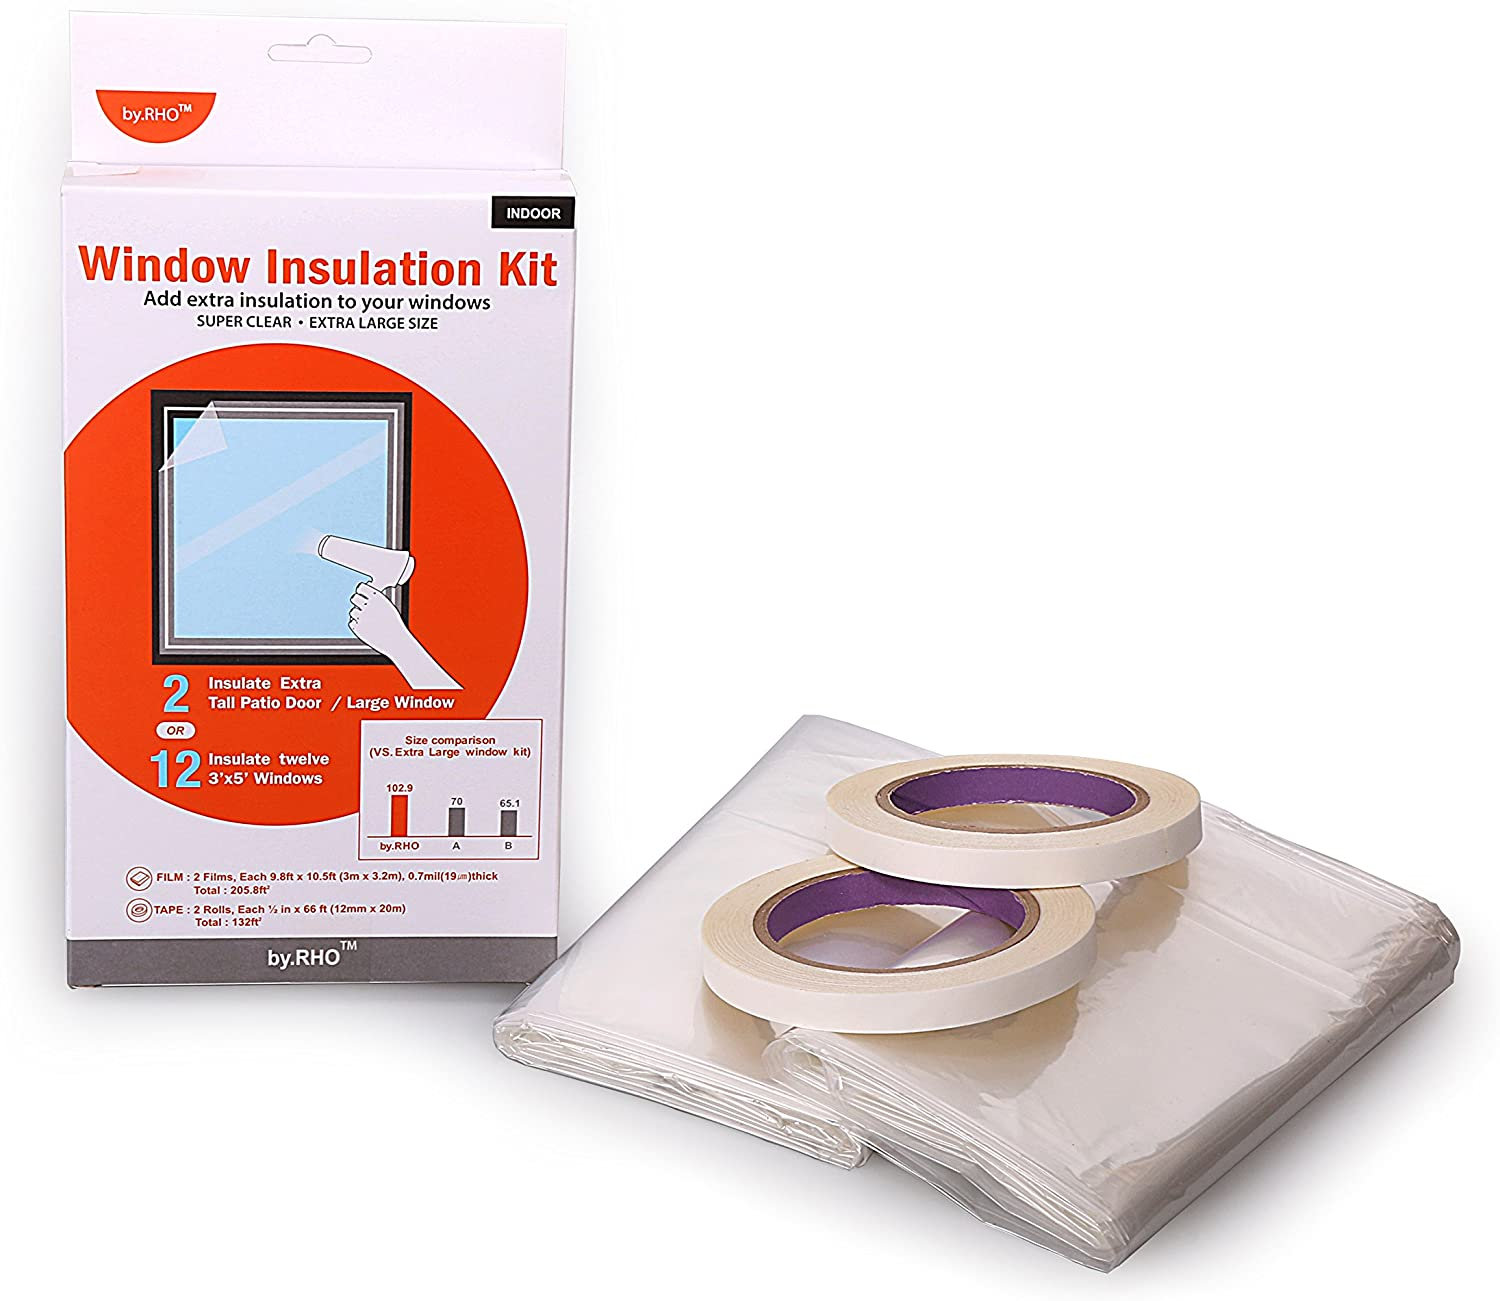 """12 Windows or 2 Patio Doors Window Insulation Kit. Super Large Size.(118""""x126"""") by.RHO. Insulator kit. 9.8FT x 10.5FT x 2sheets Heat Shrink Cling Film, 2X 66ft Tape. Good Quality Shrink Film"""